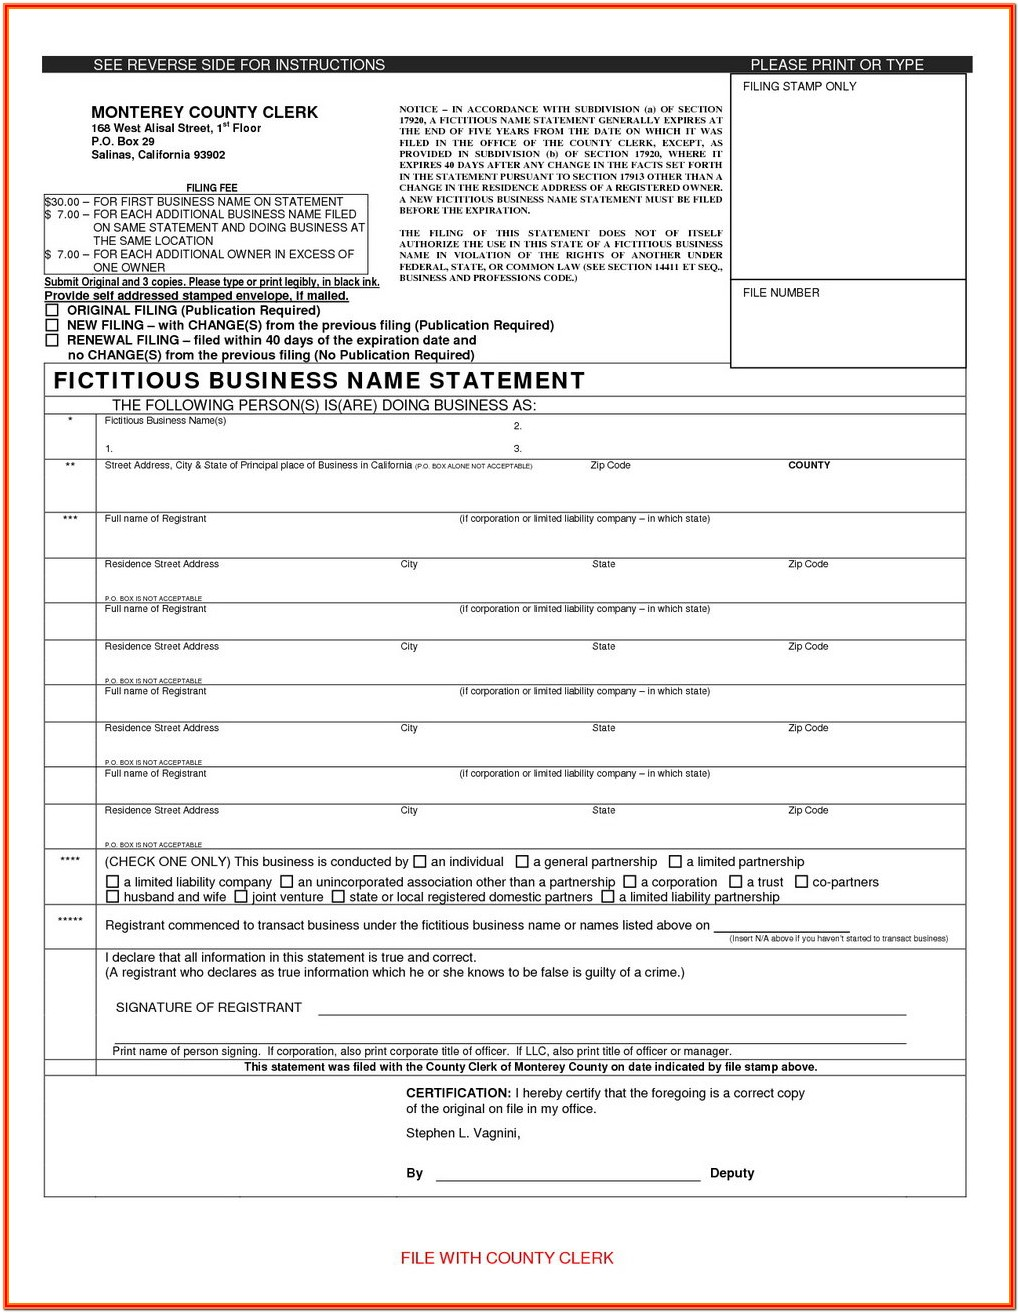 Fictitious Business Name Statement Form Pdf